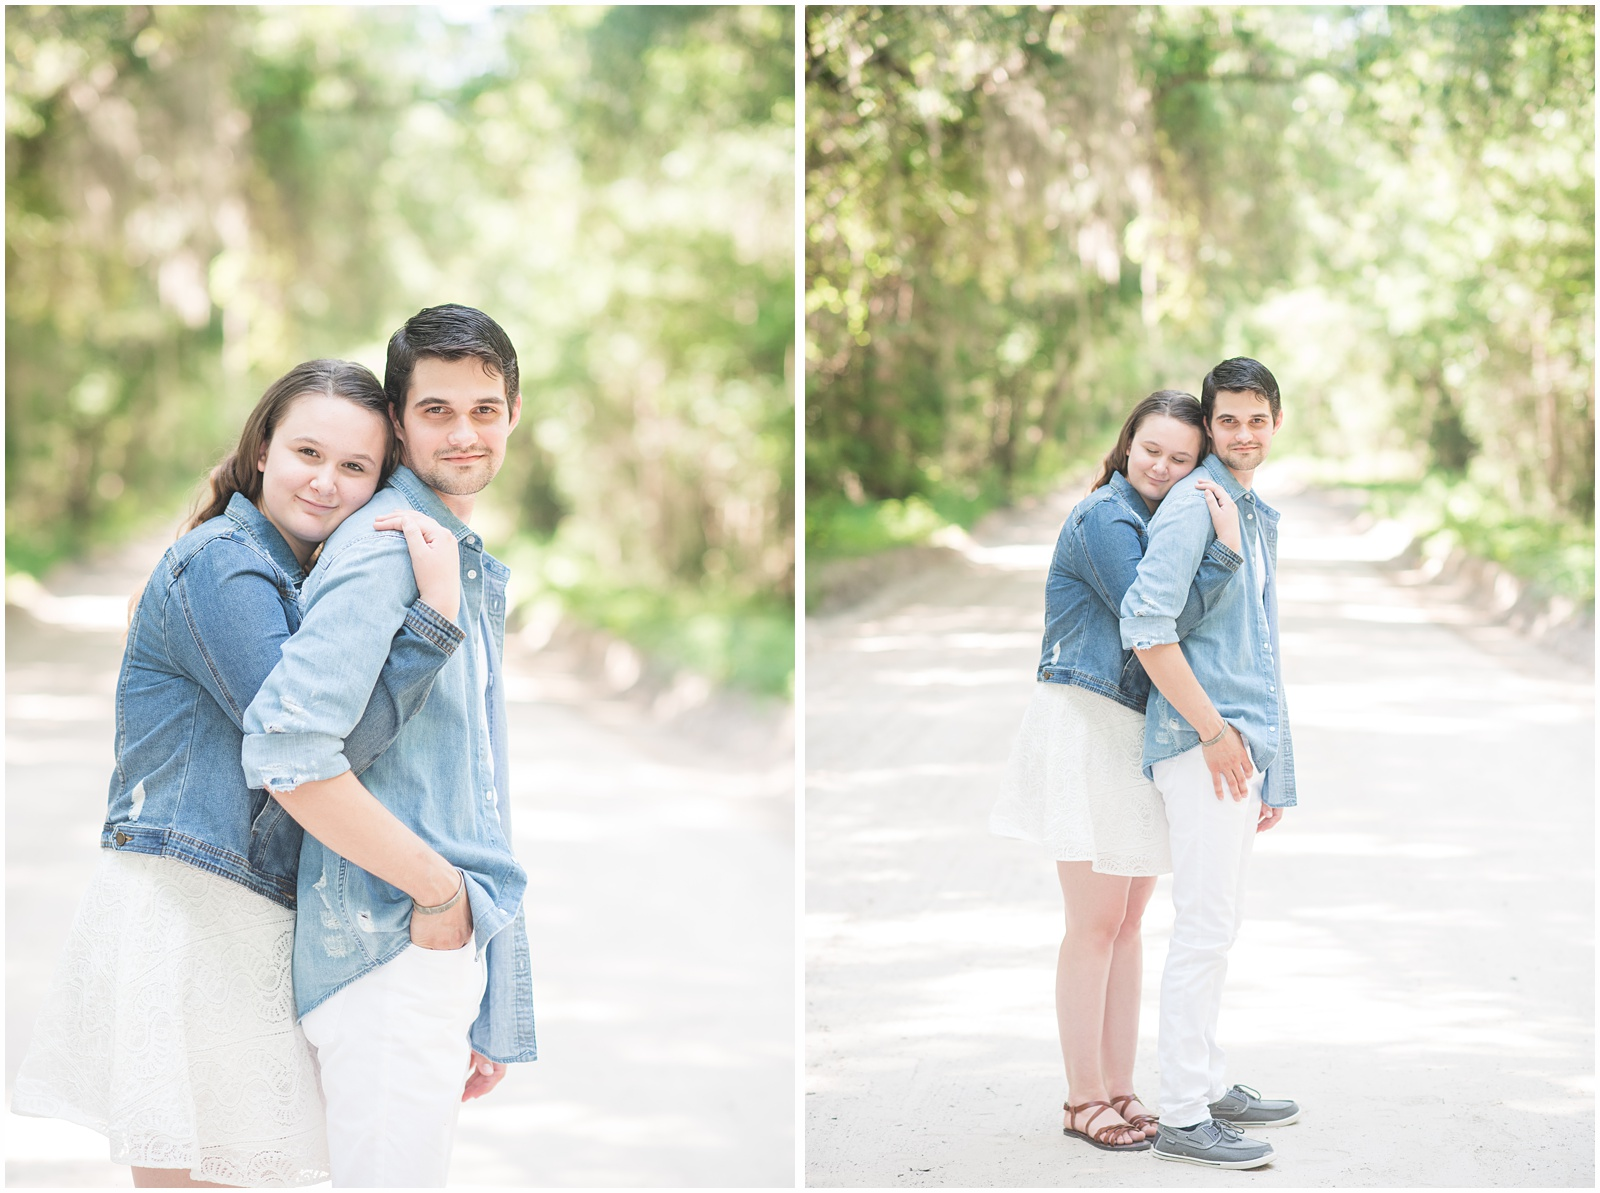 Fort White_Florida_Outdoor_Engagement_Portraits_18.jpg